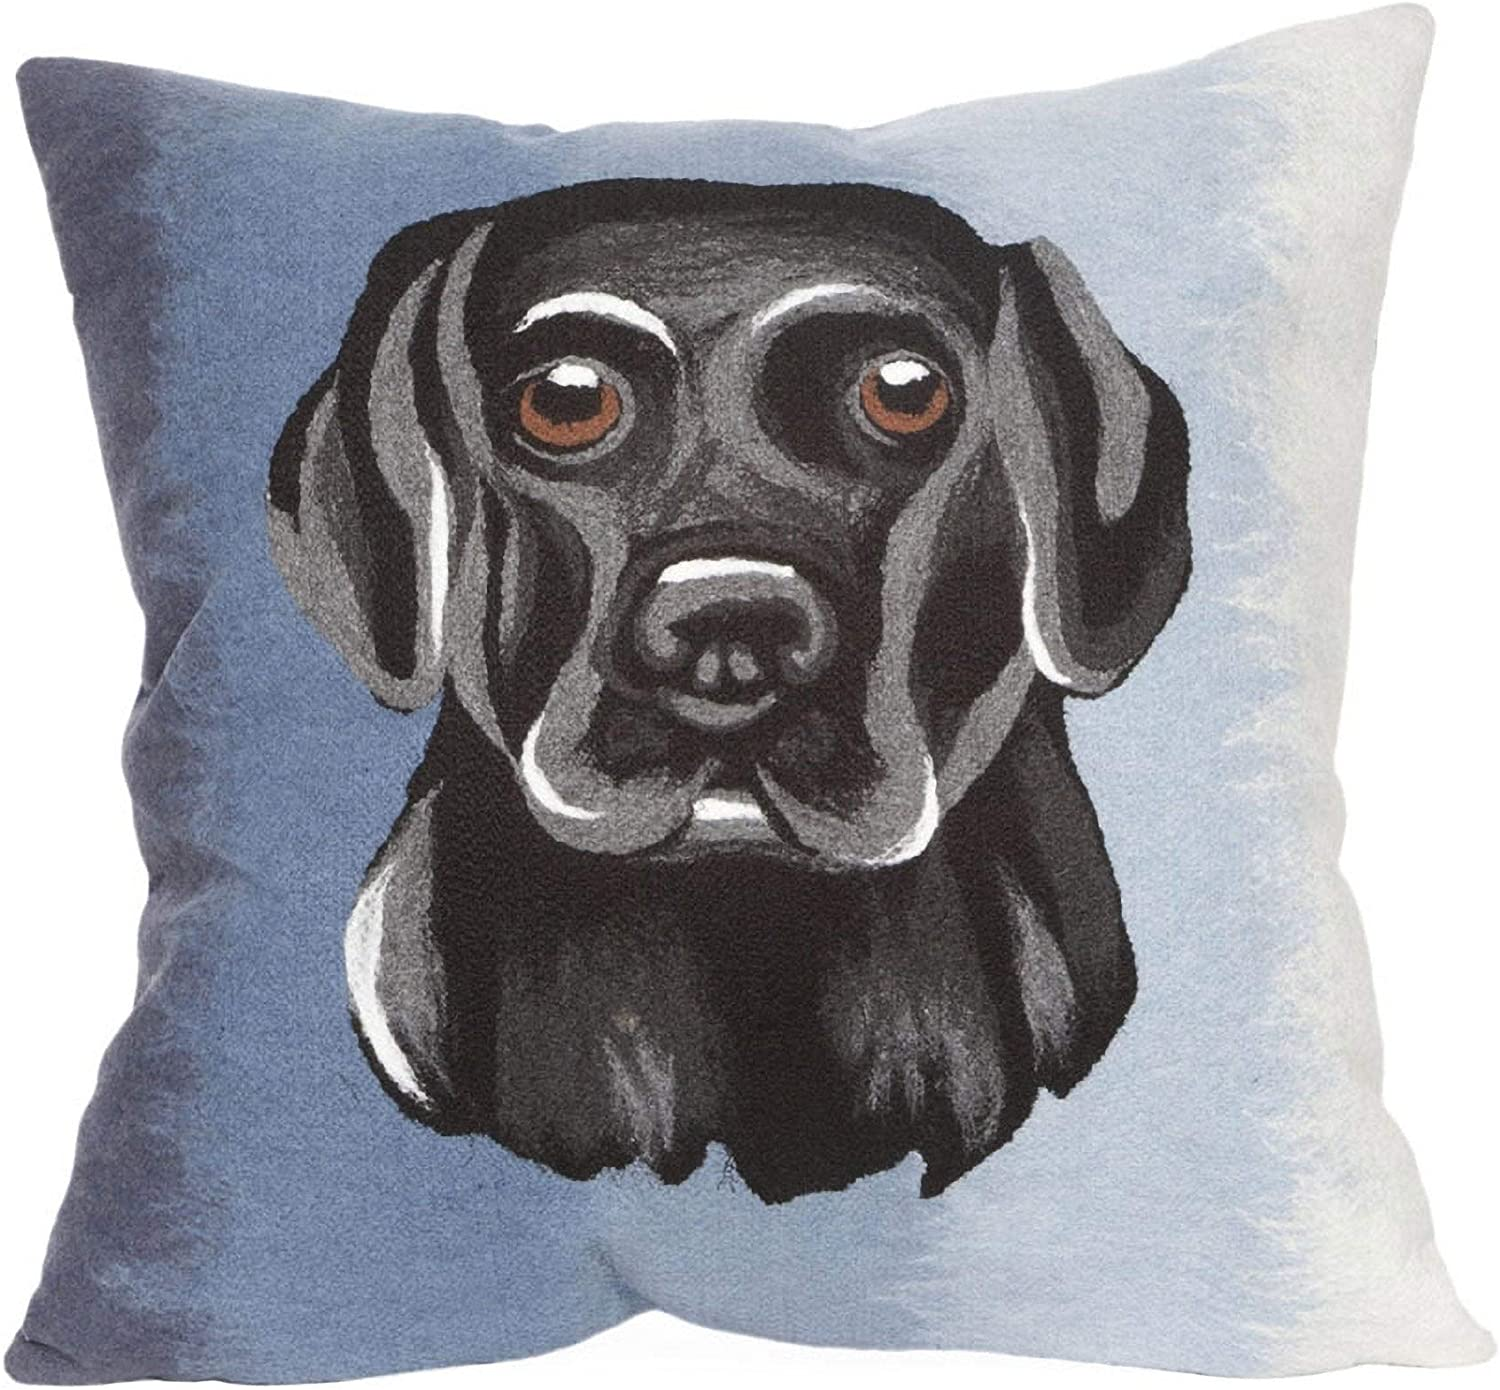 Liora Manne Trans Special price for a limited time Ocean Imports 4173 Pillow 20 Don't miss the campaign Coal 33 Sq Sky